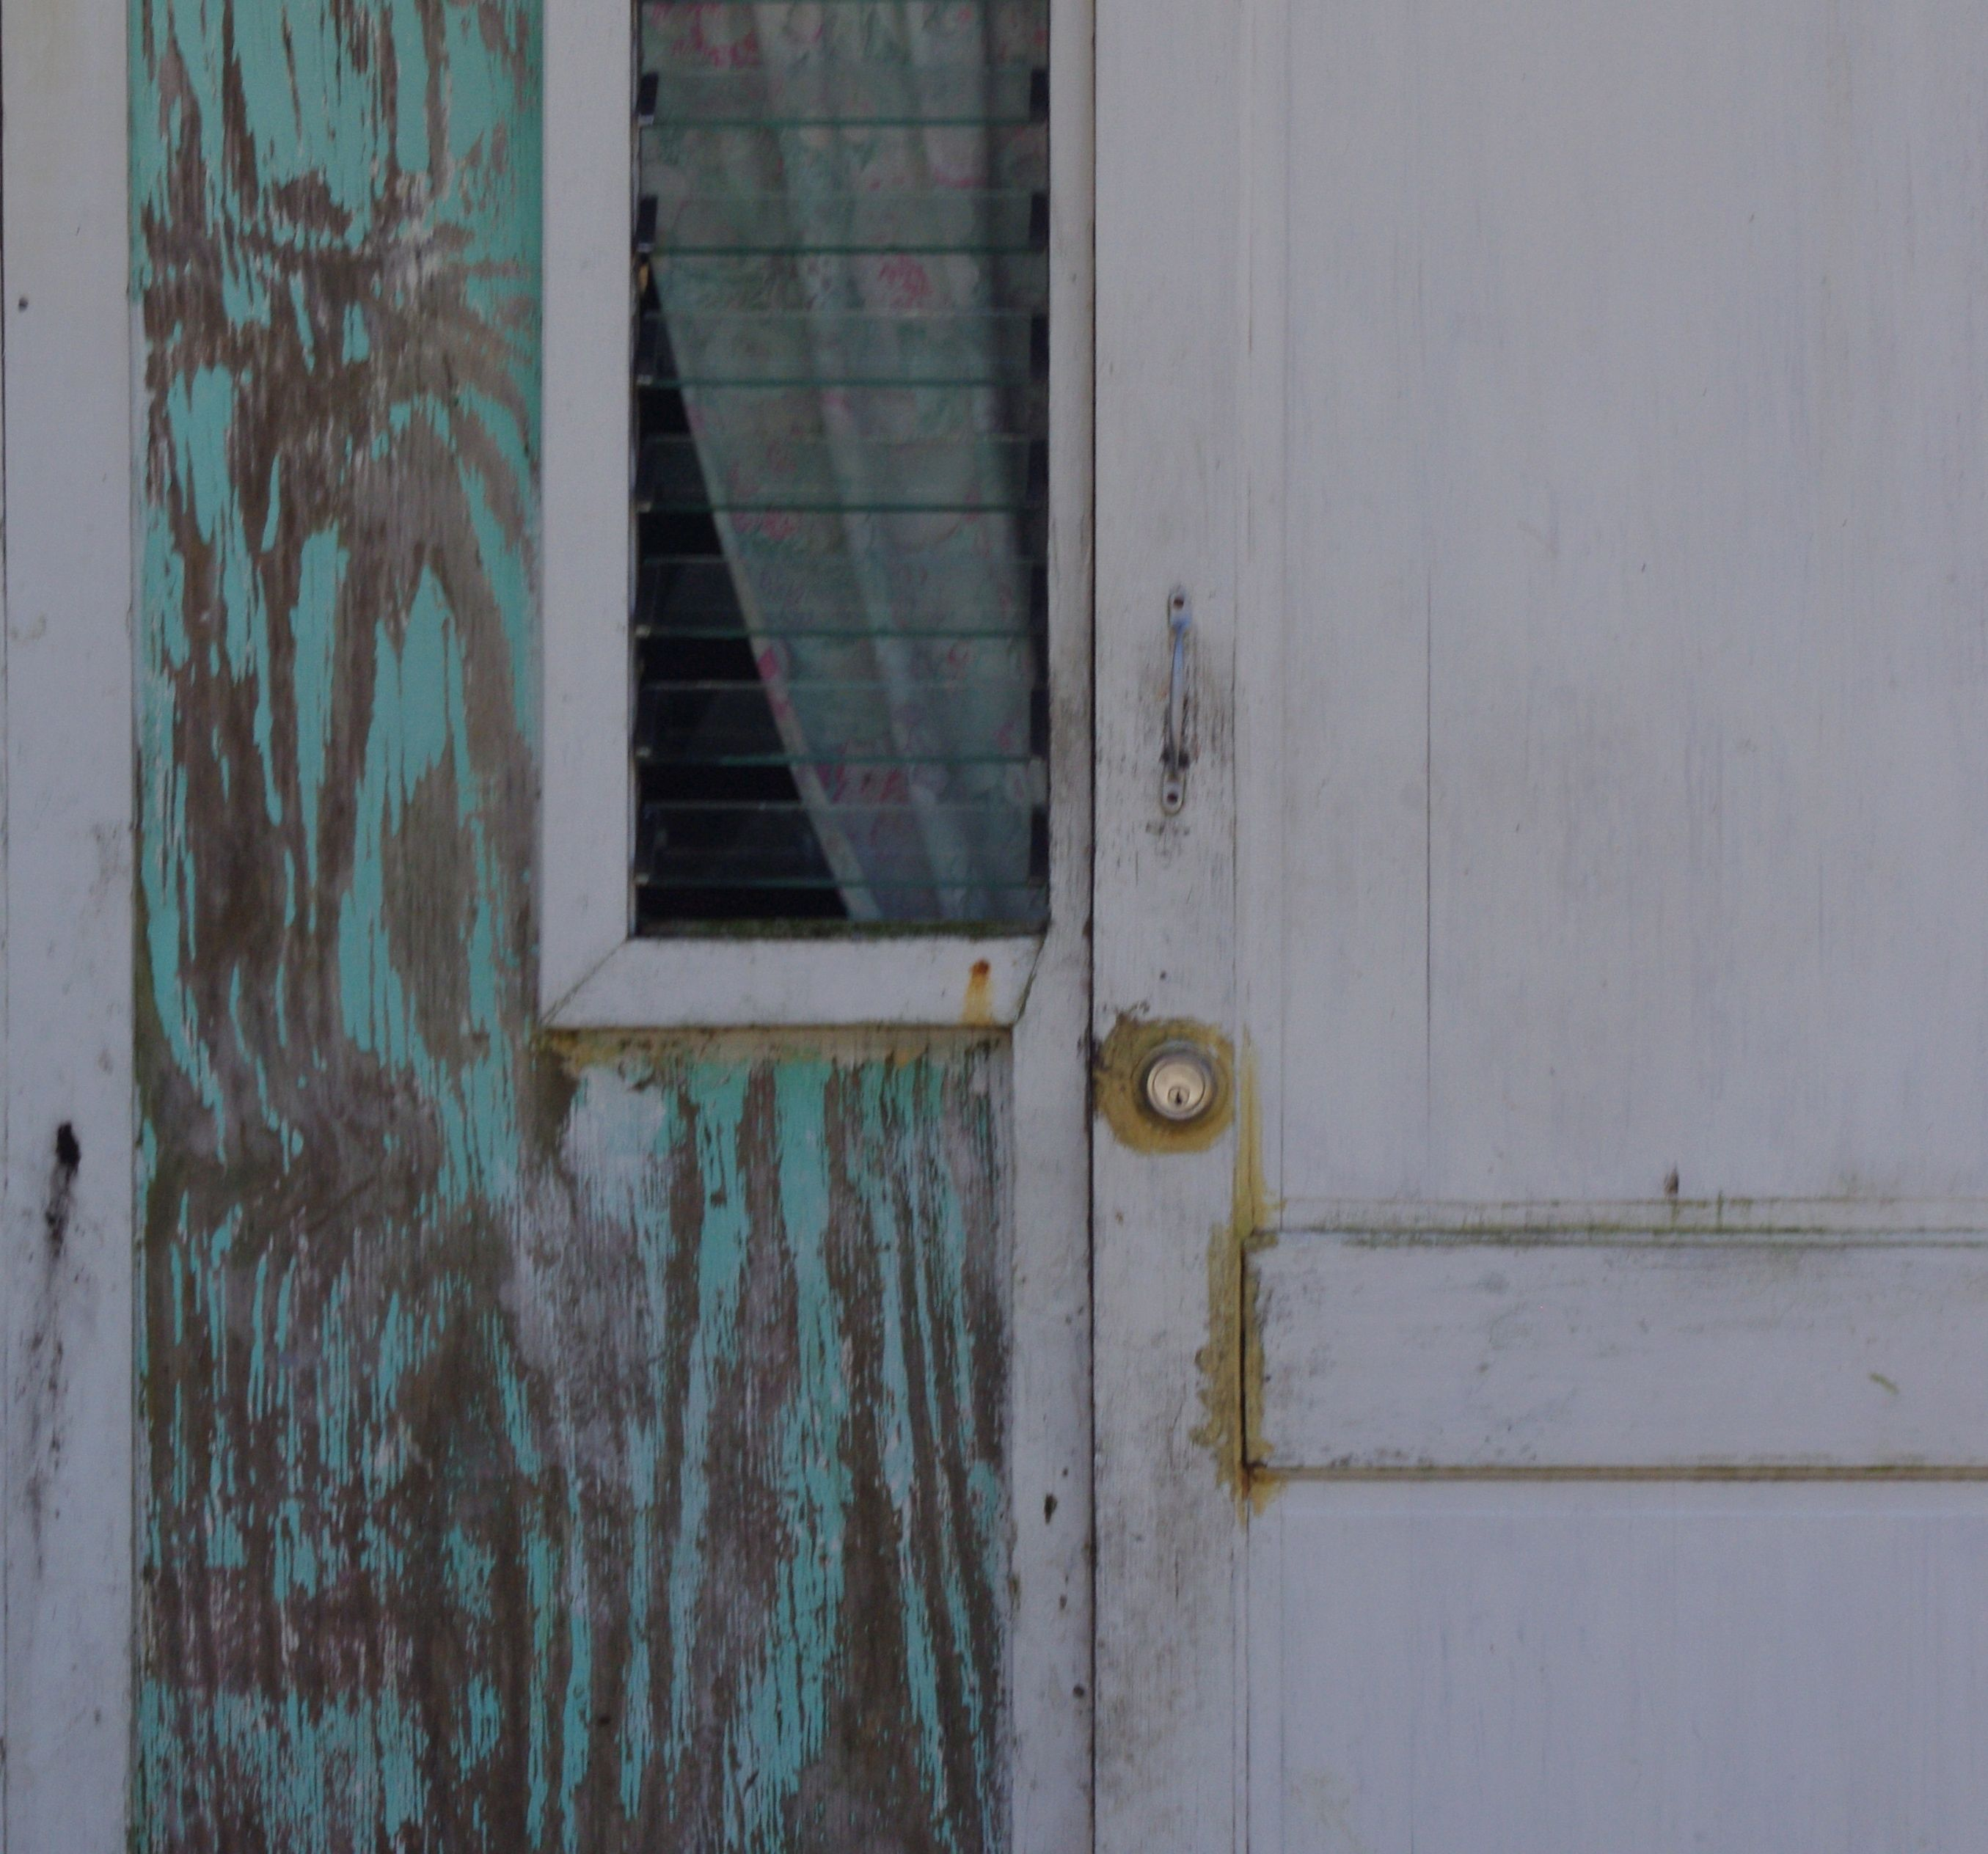 thisbe nissen, aqua-painted plywood, gold door lock, parted curtain, barbados, 2013